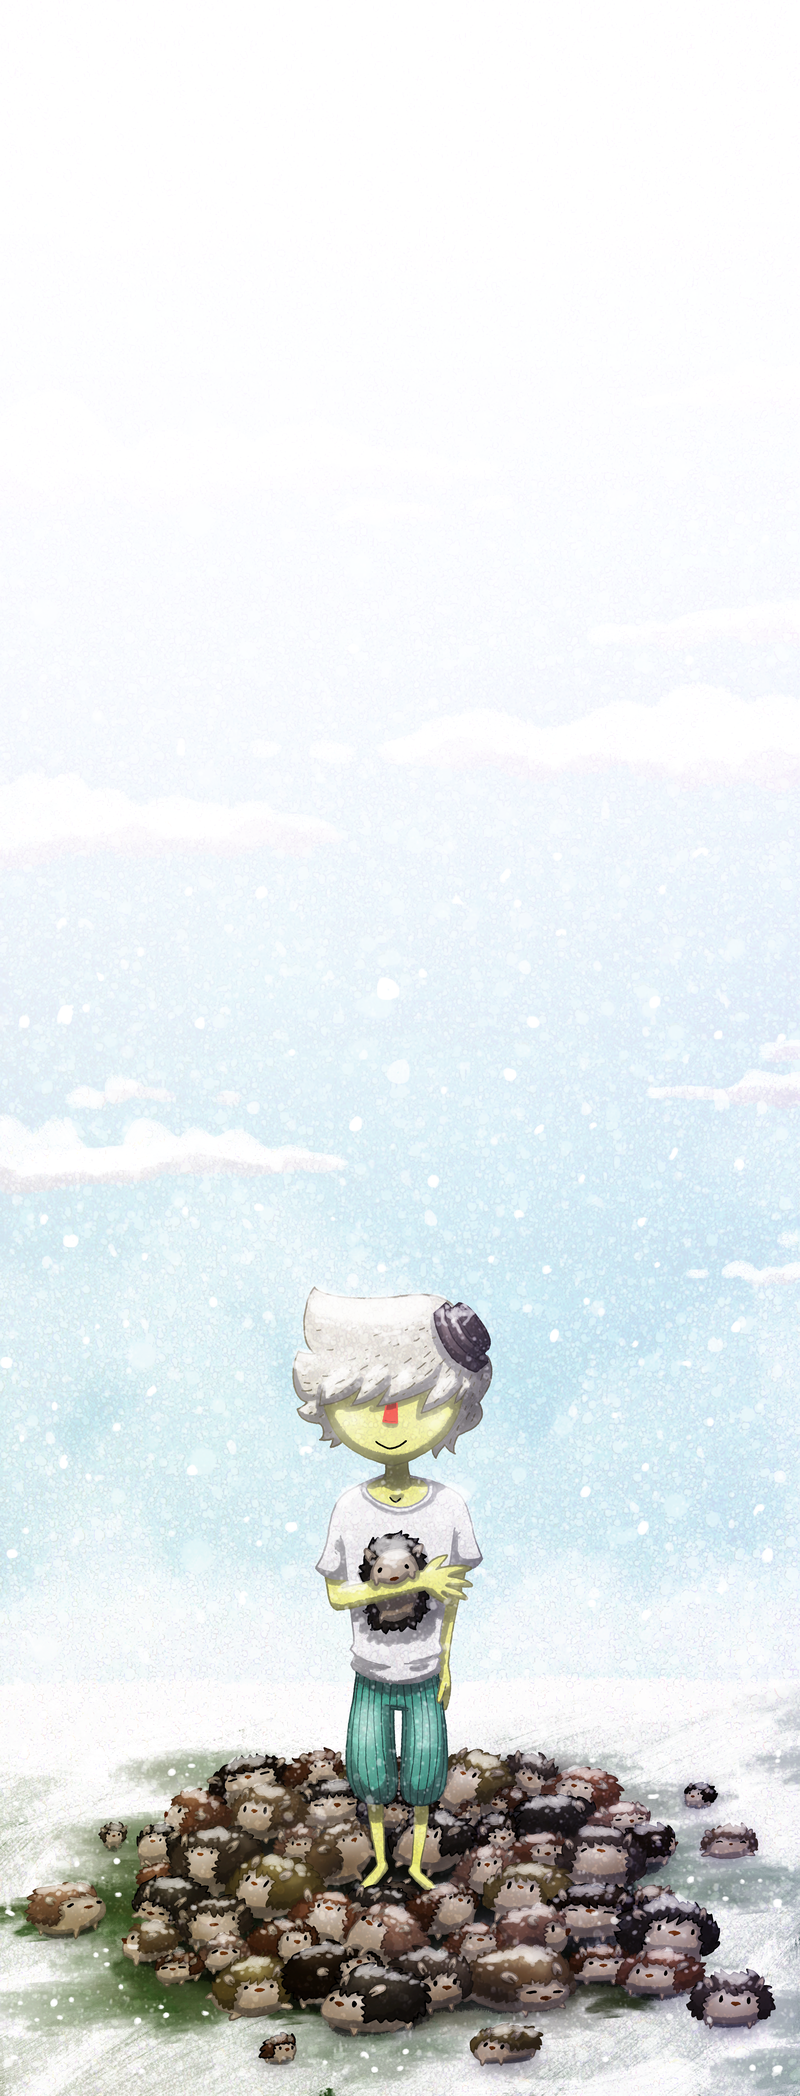 Hedgehogs and snow